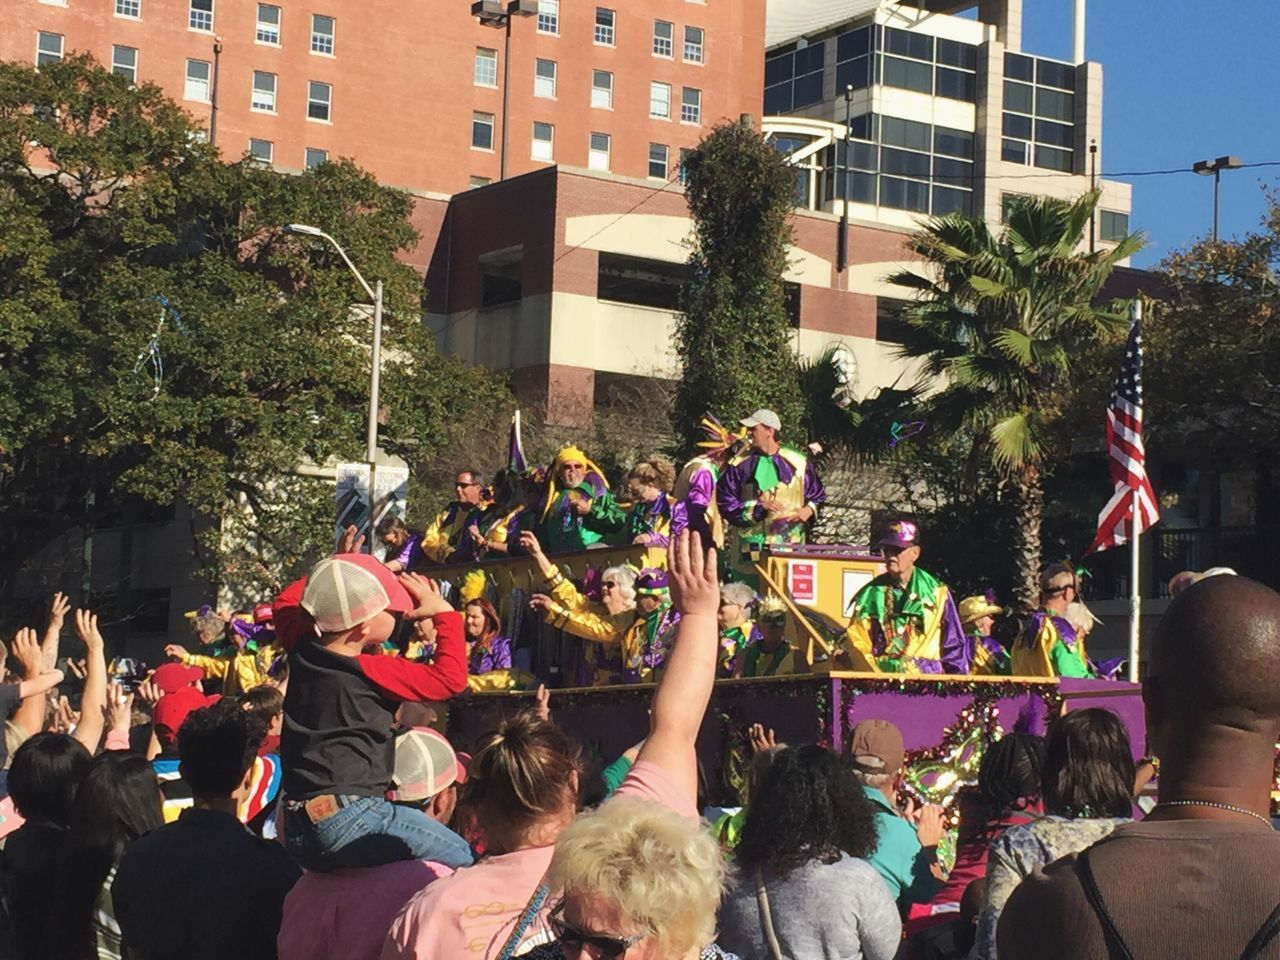 Let the Good Times Roll! Real People Parade Togetherness Beads Carnival Crowds And Details Gulf Coast Fun Celebration Large Group Of People Building Exterior Outdoors Women Men Tree Day Architecture City Crowd Adult People Adults Only Carnival Crowds And Details